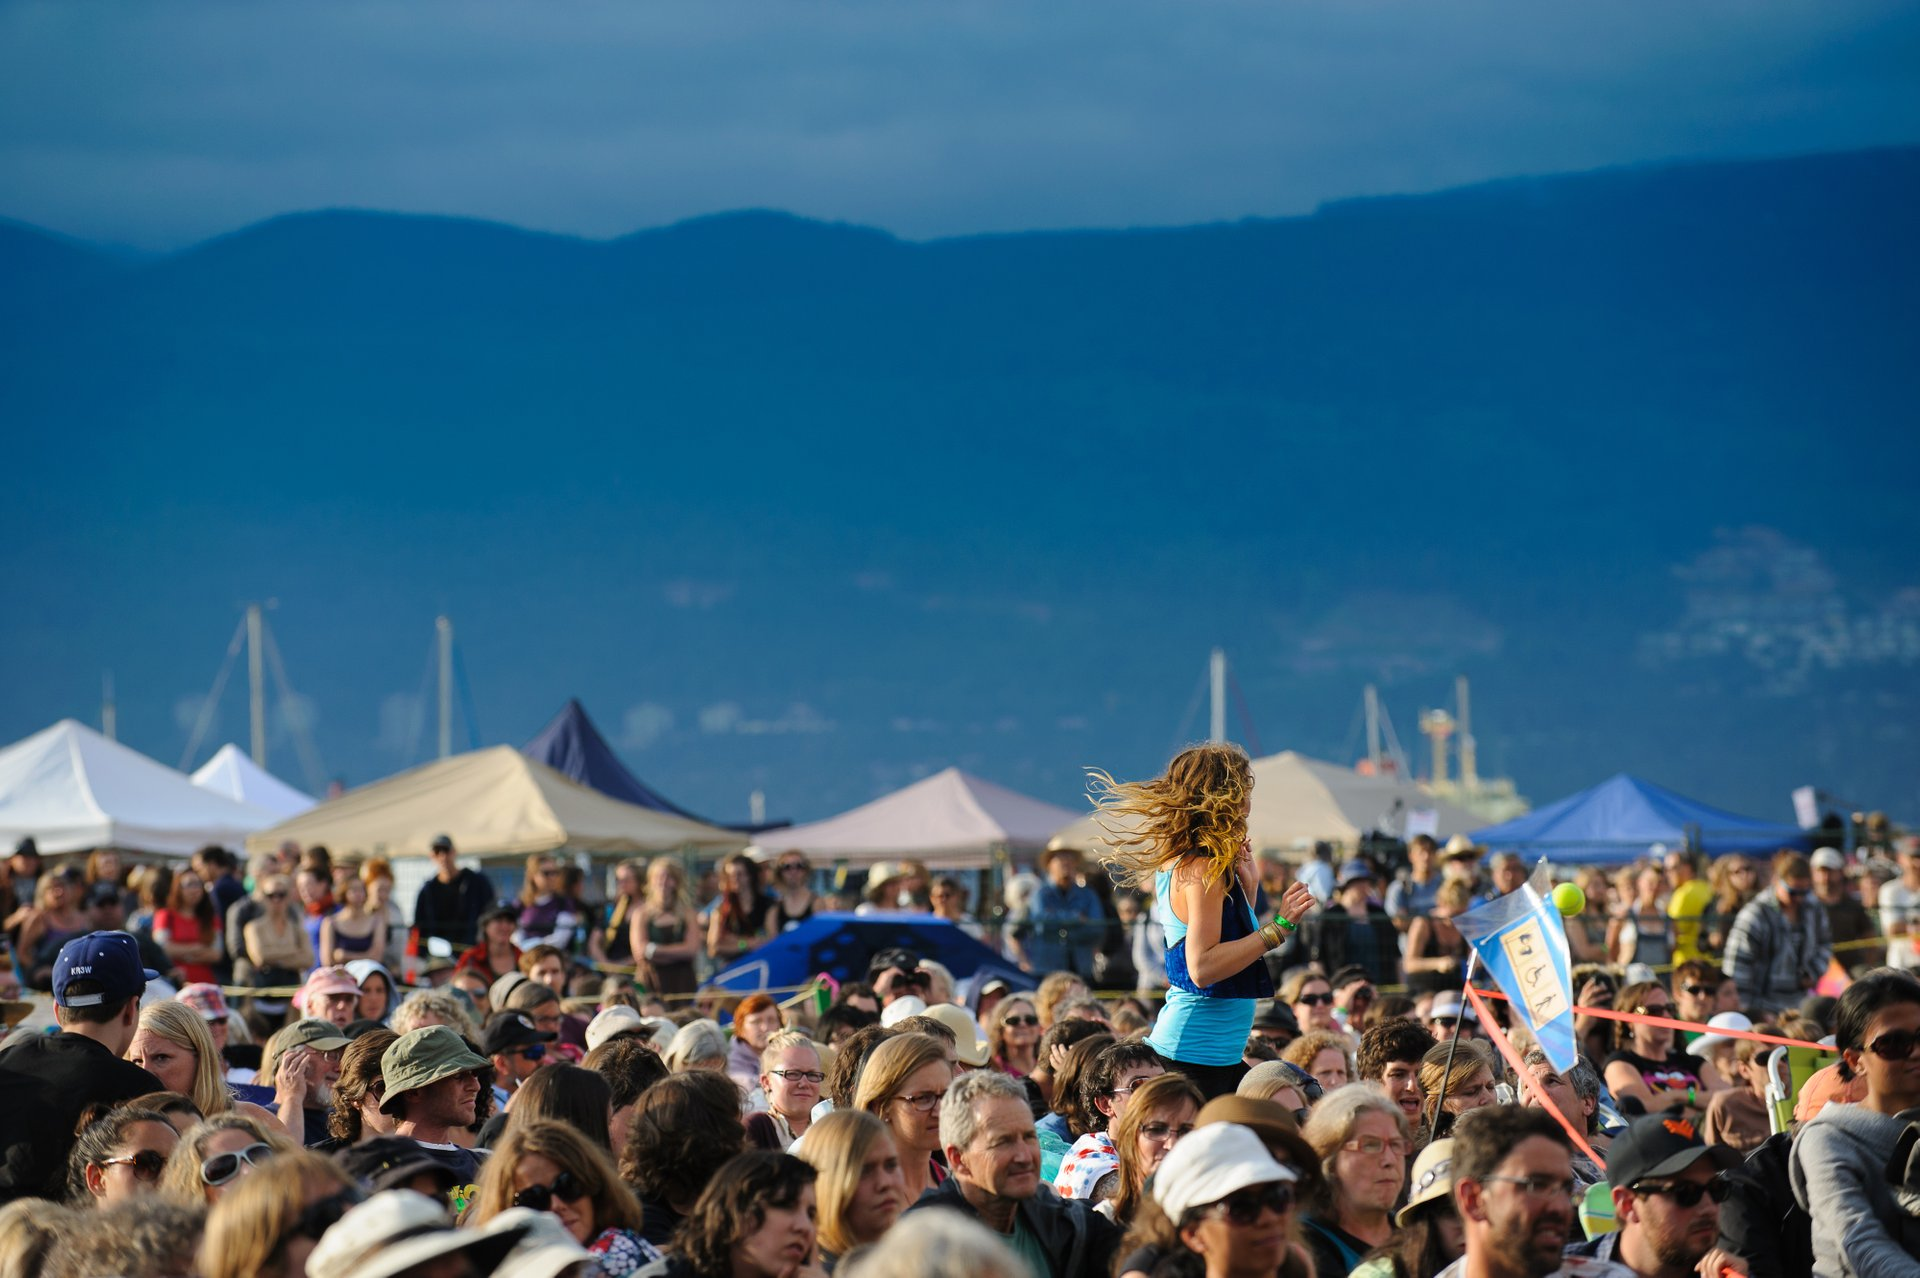 Best time for Vancouver Folk Music Festival in Vancouver 2020